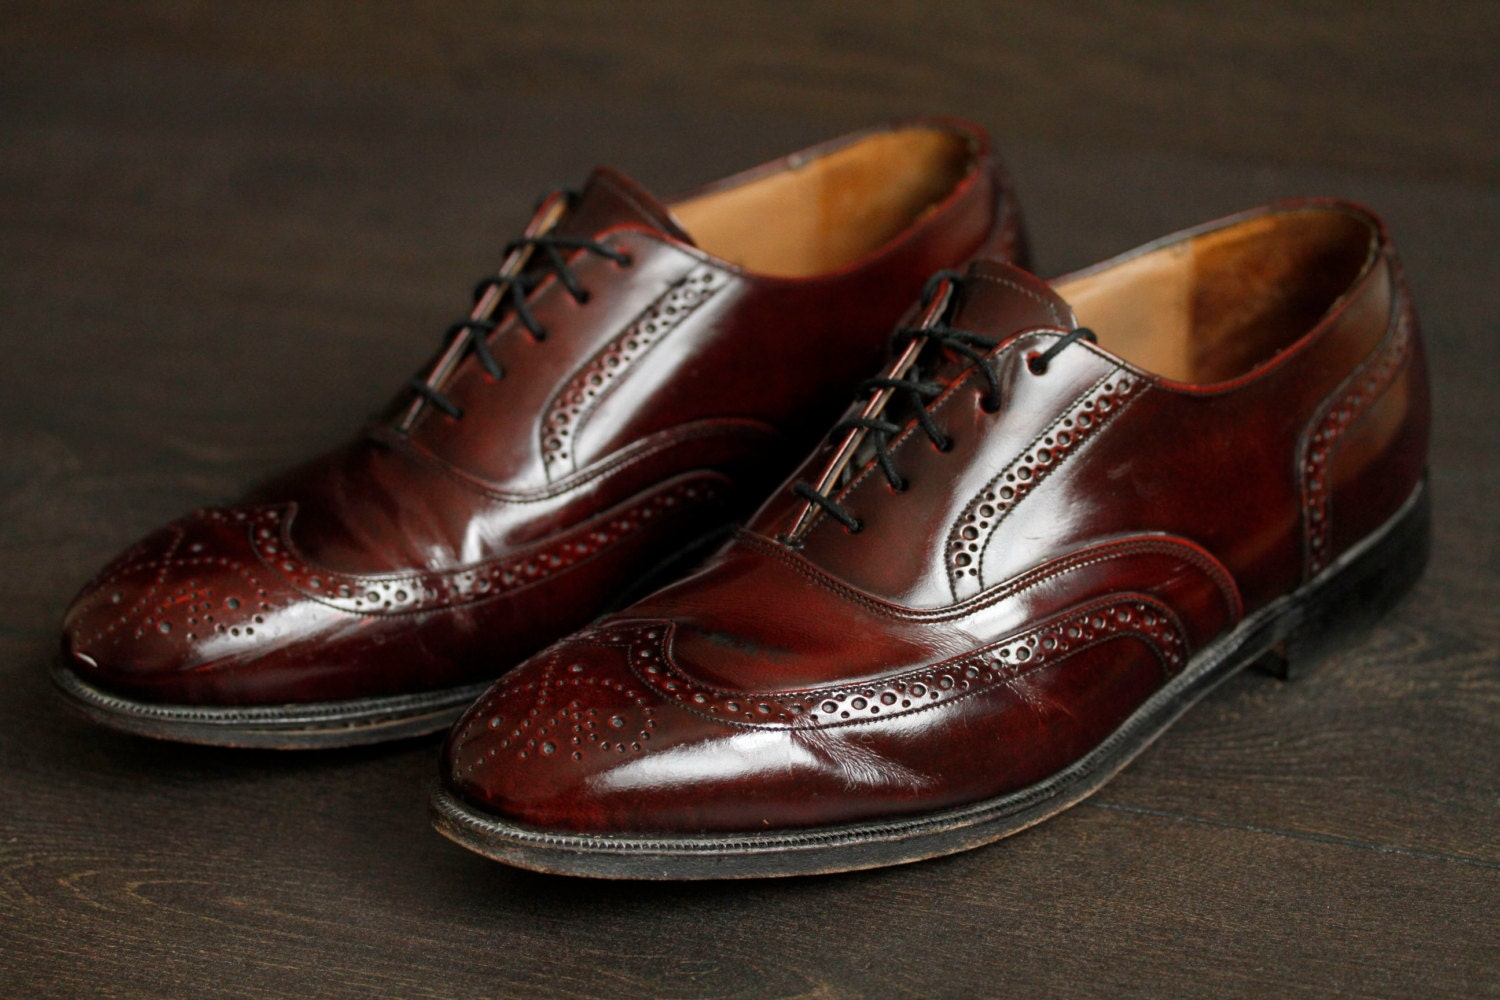 oxblood wing tip mens vintage dress shoes by